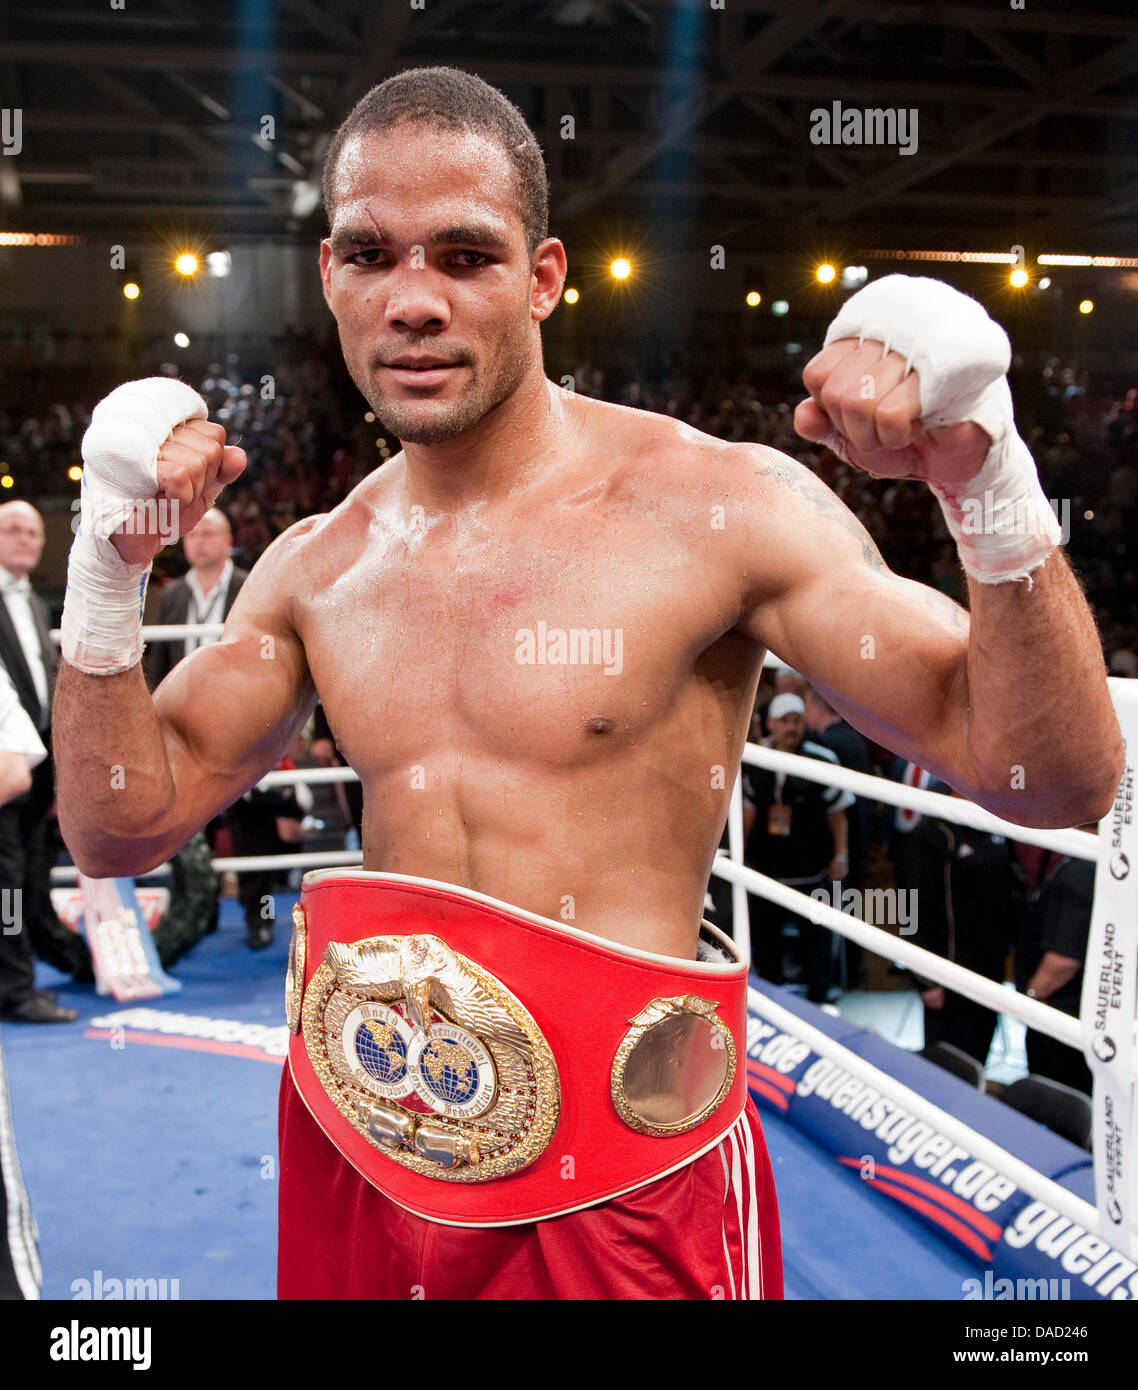 Cuban boxer Yoan Pablo Hernandez cheers after the IBF Cruiserweight World Championship-fight against US boxer Steve - Stock Image